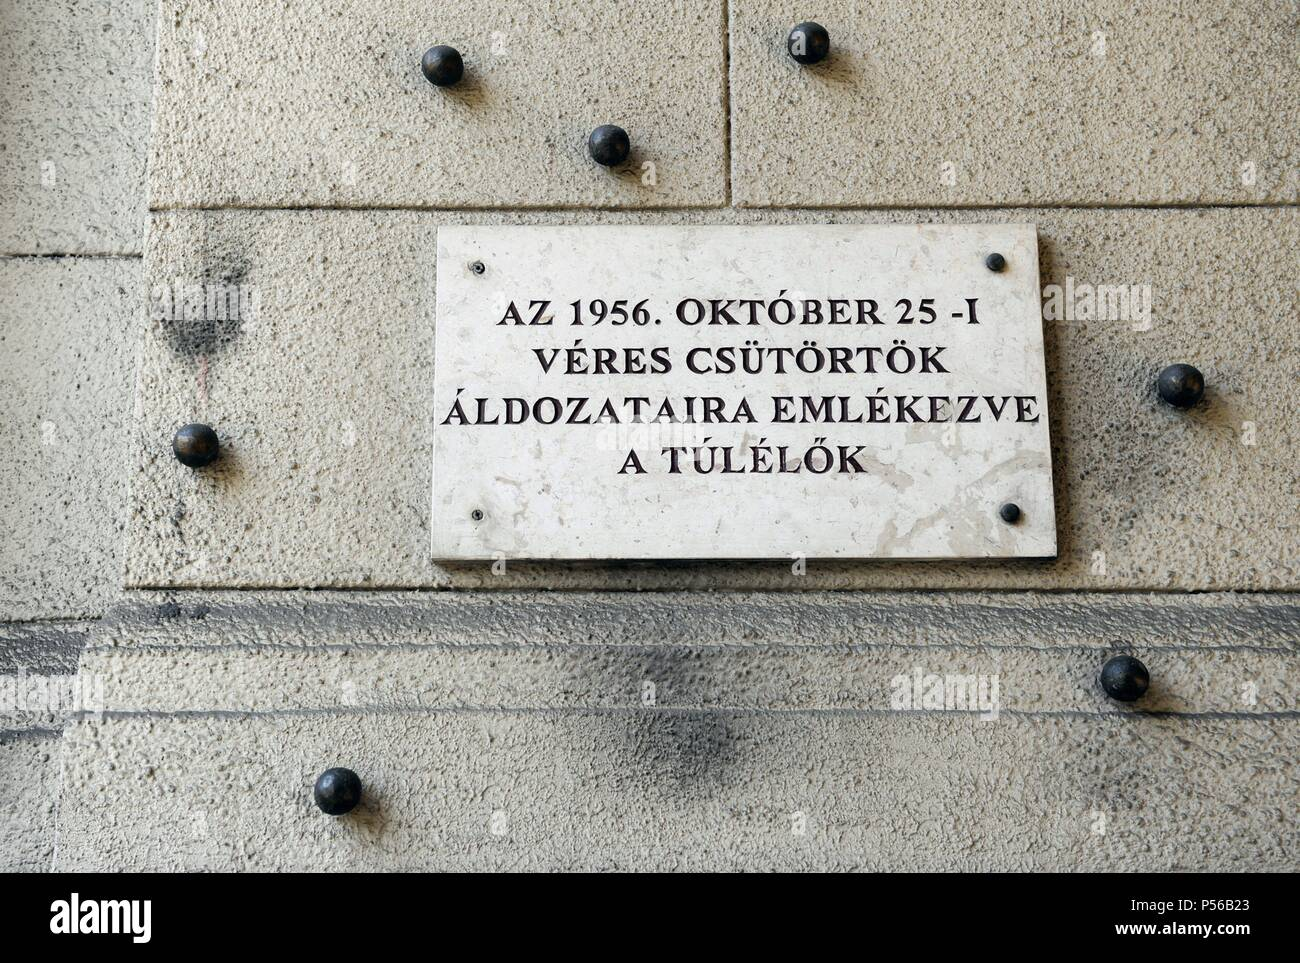 Hungary. Budapest. Steel balls on the facade of the Ethnographic Museum in memory of people killed by the Hungarian communist regime on October 25, 1956, after the failure of the Hungarian Revolution. Stock Photo